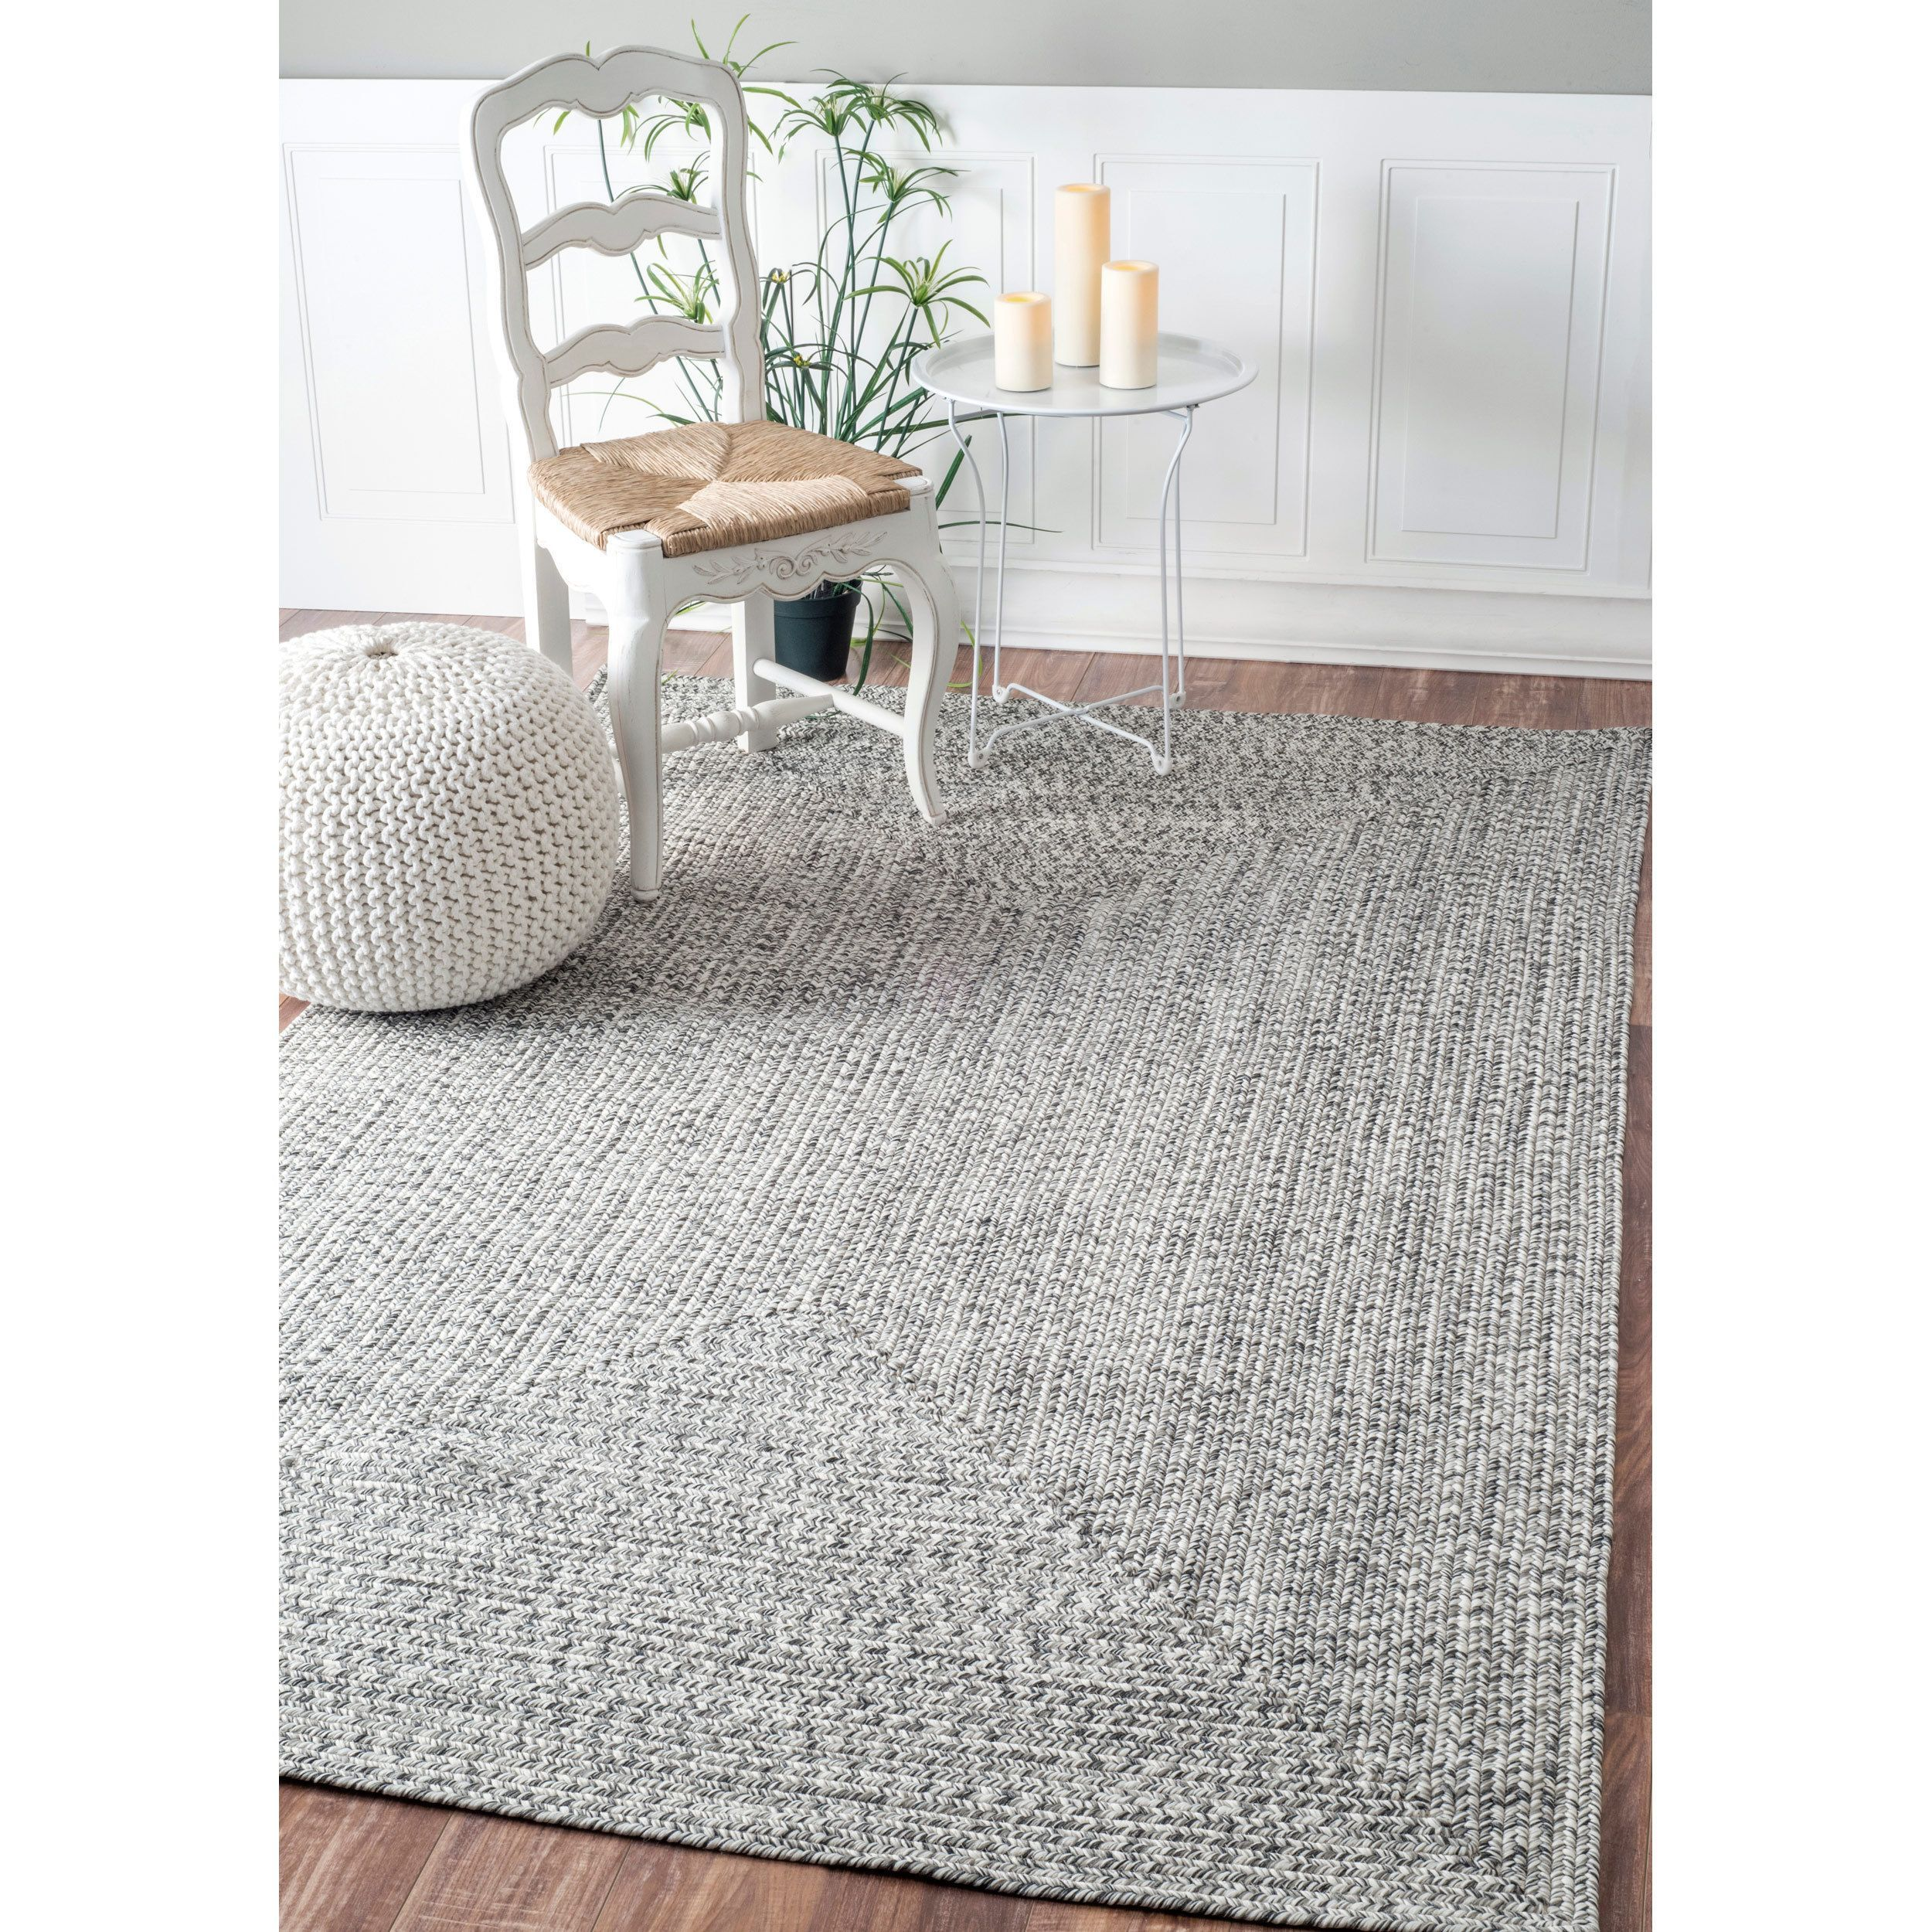 Nuloom Handmade Casual Solid Braided Indoor Outdoor Rug 3 X 5